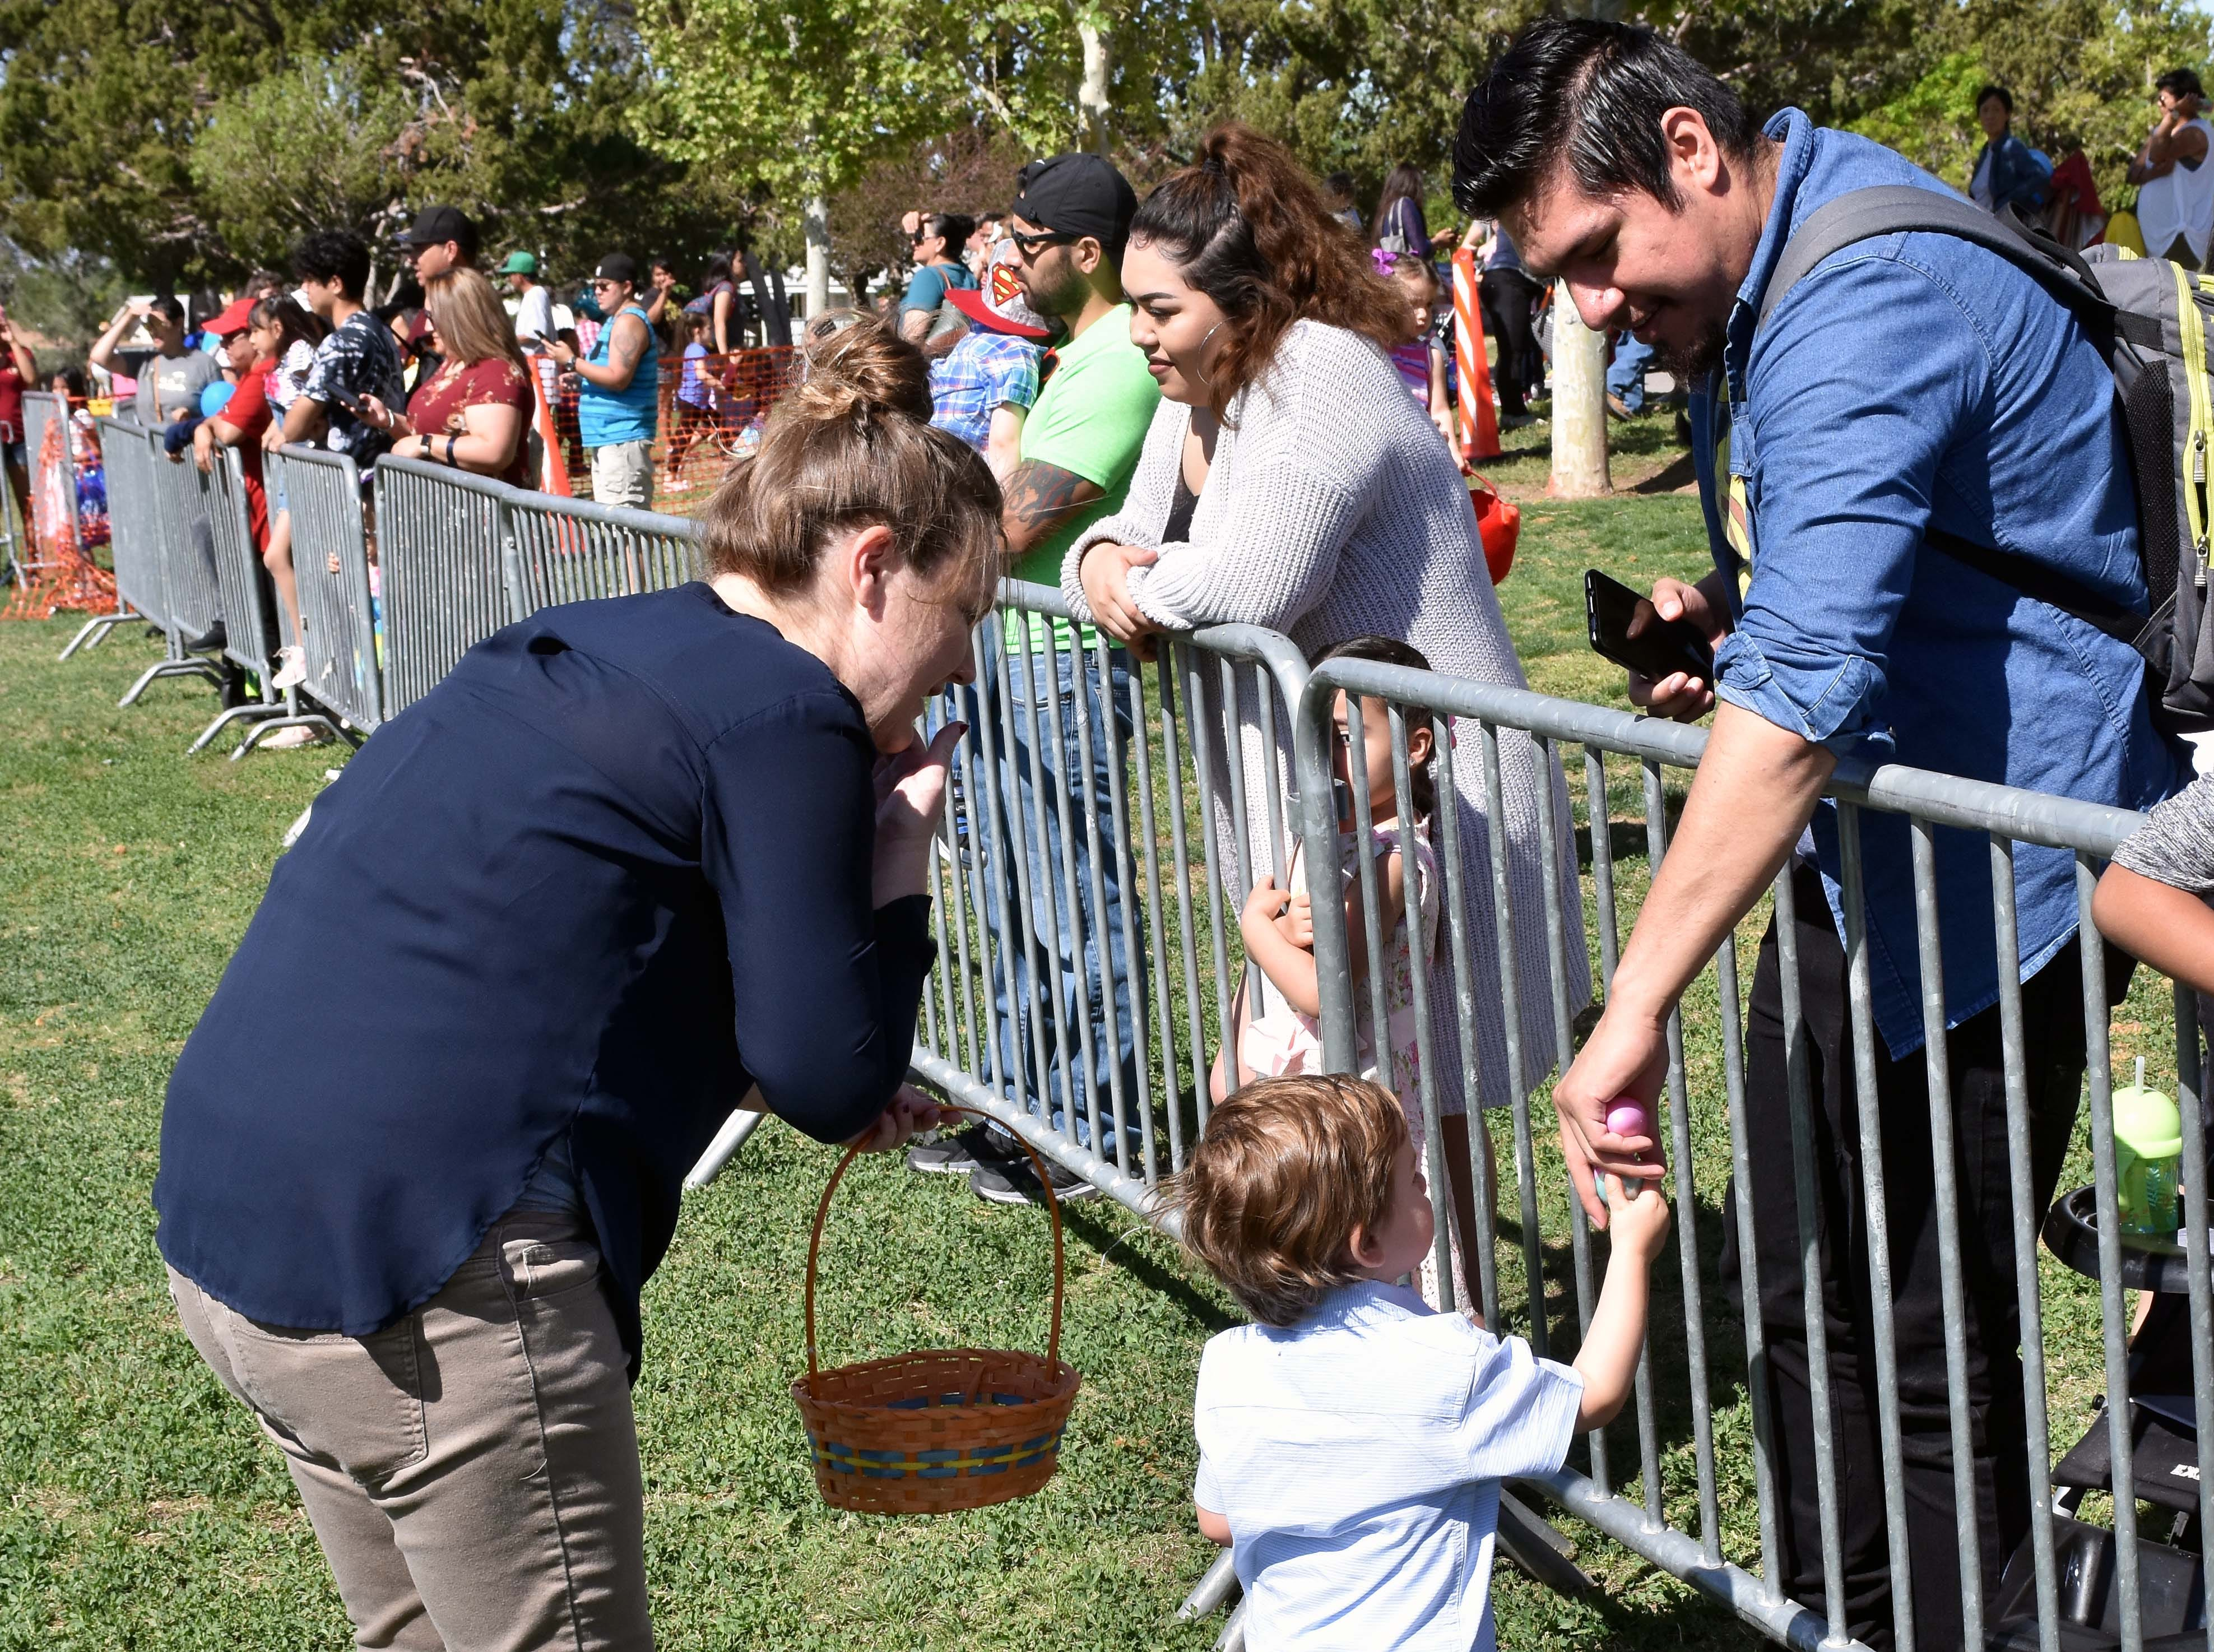 Max Salazar, 1 and a half, shares his Easter eggs with Chris Salazar as his mother Jennifer Stacy watches during this year's SpringFest at Young Park on Saturday, April 20, 2019.